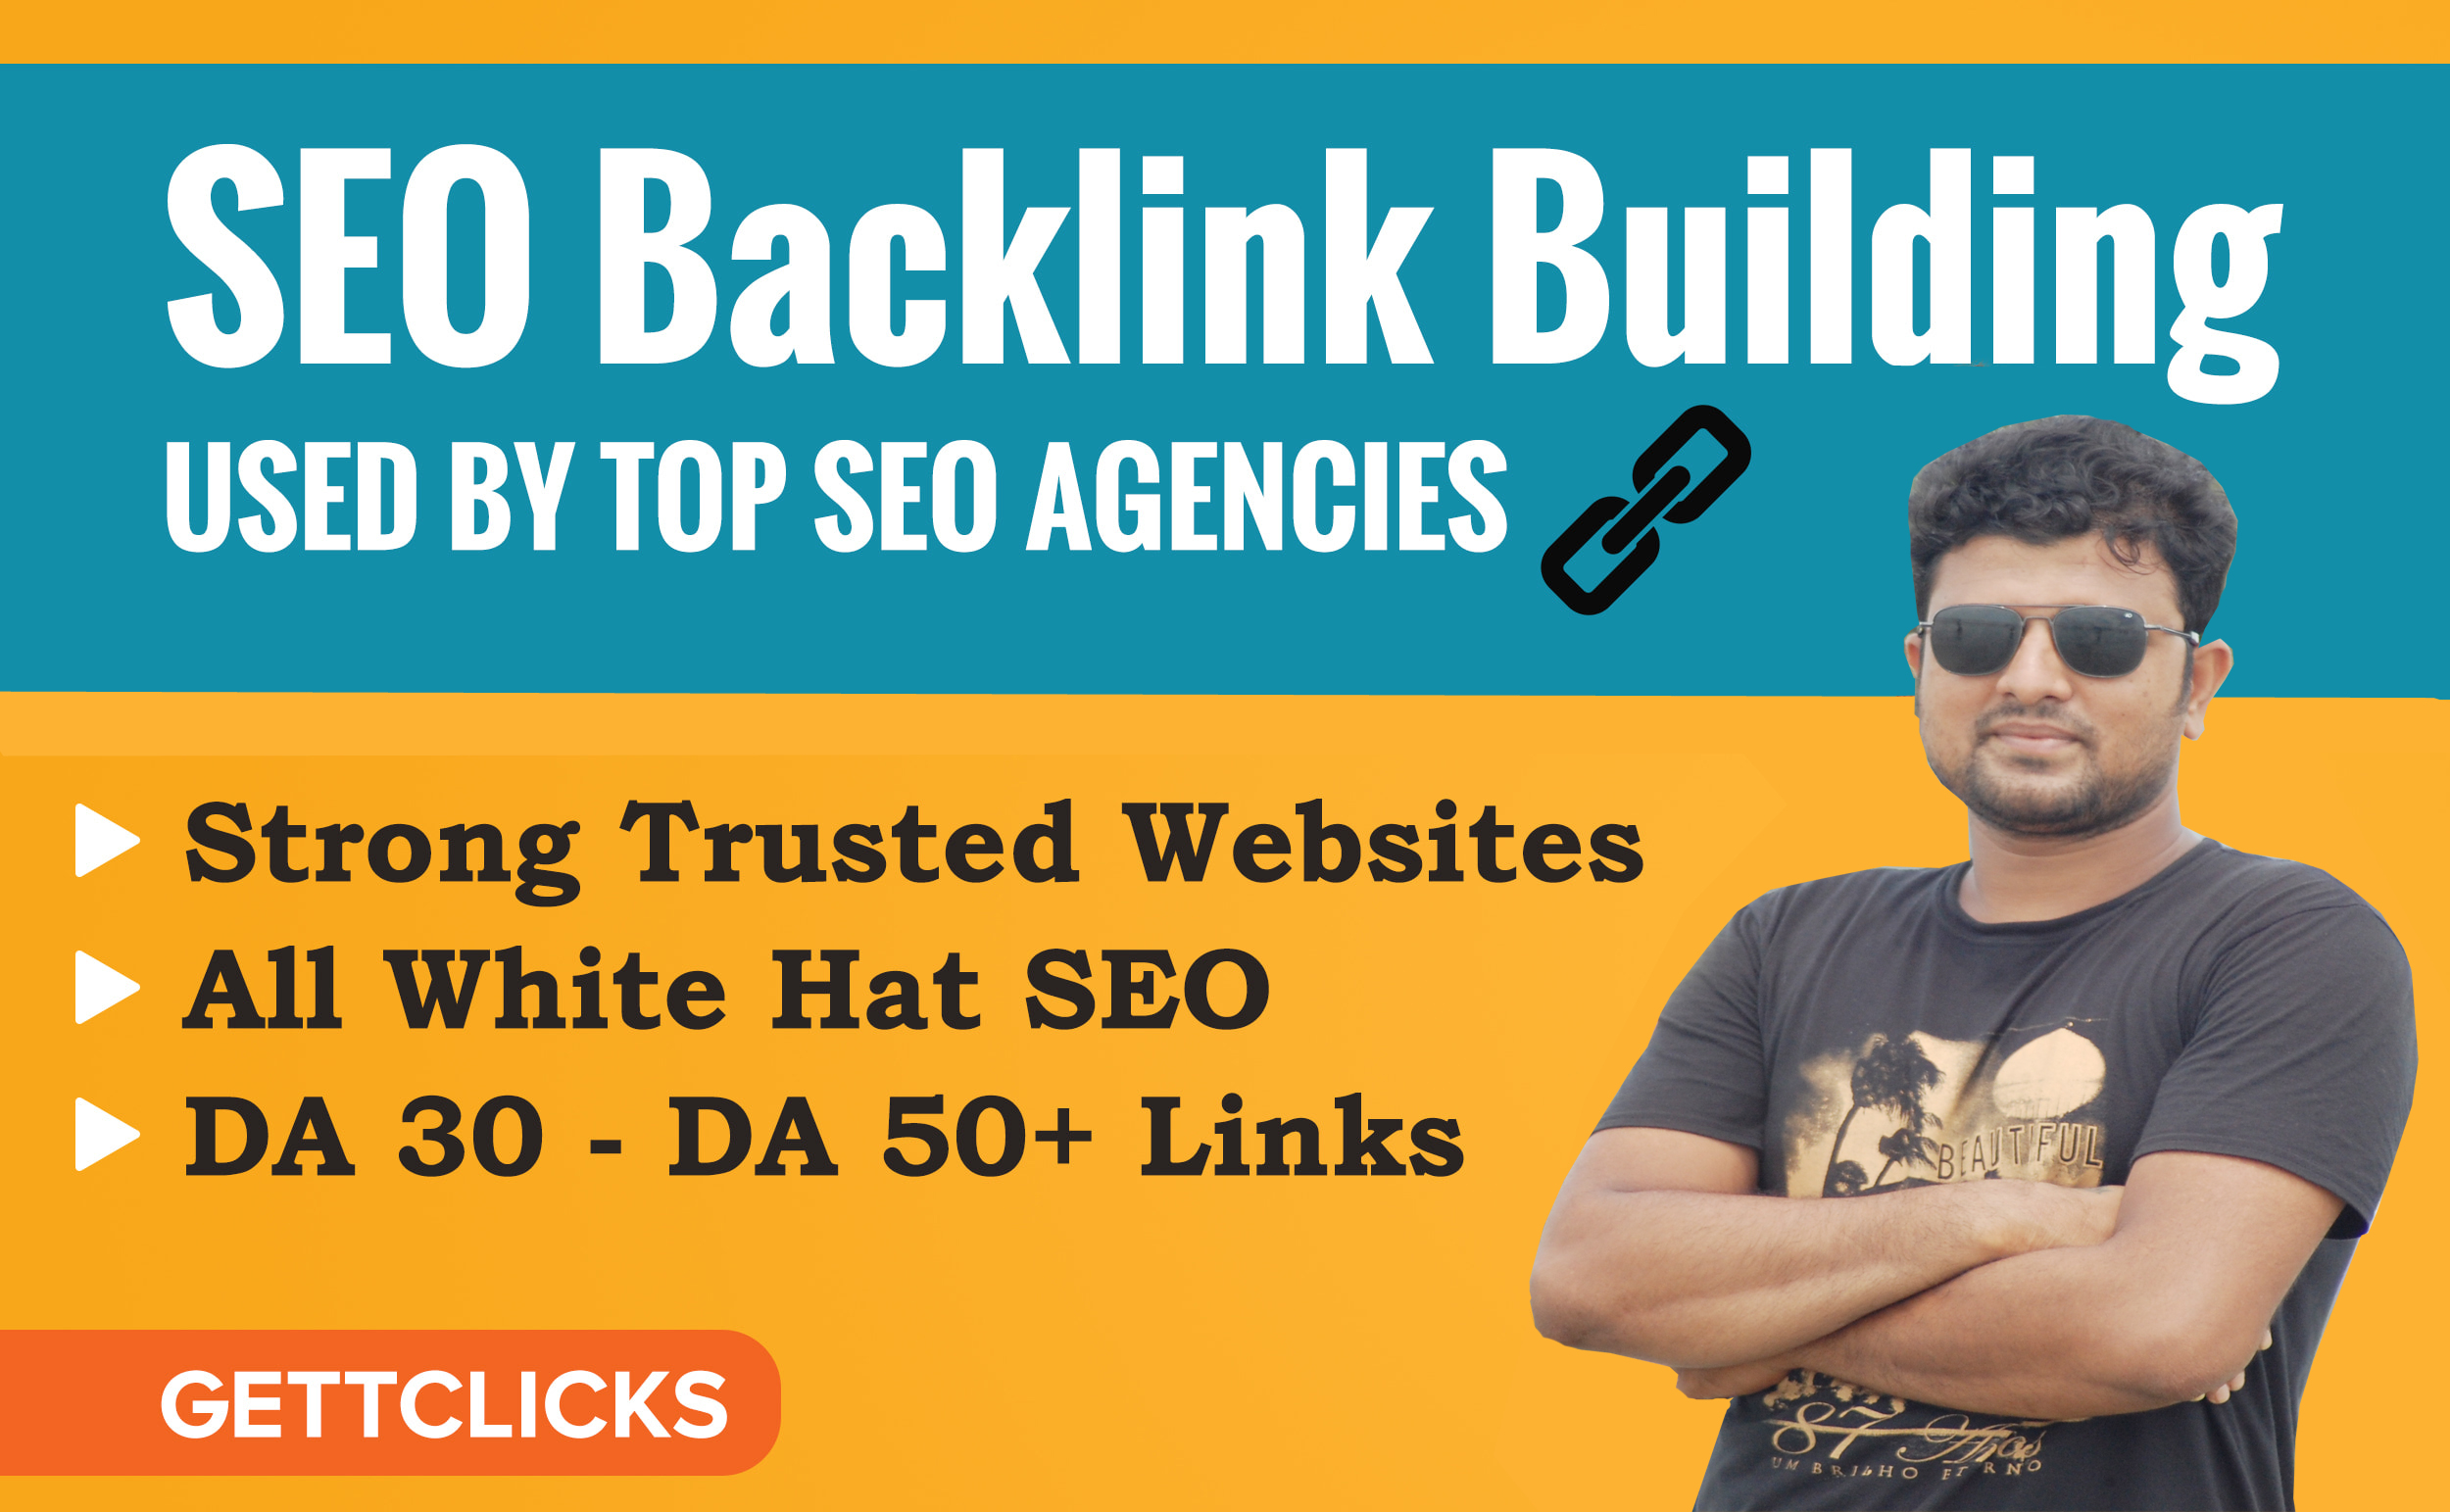 Do SEO Backlink Building For Ranking Your Website